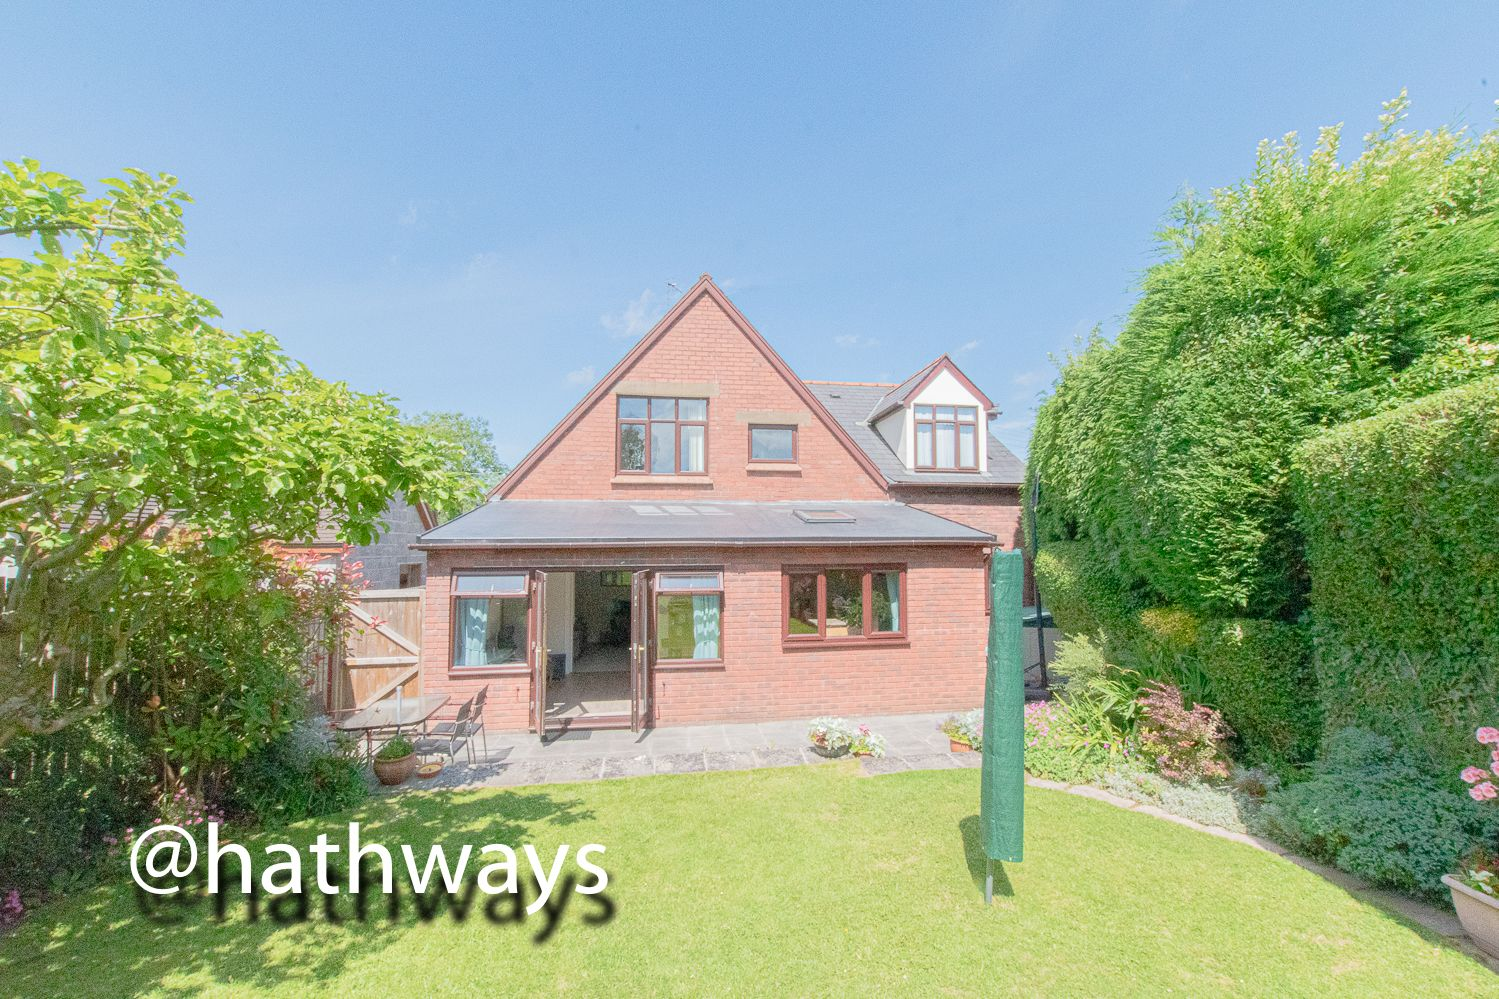 4 bed house for sale in Ashford Close South  - Property Image 52